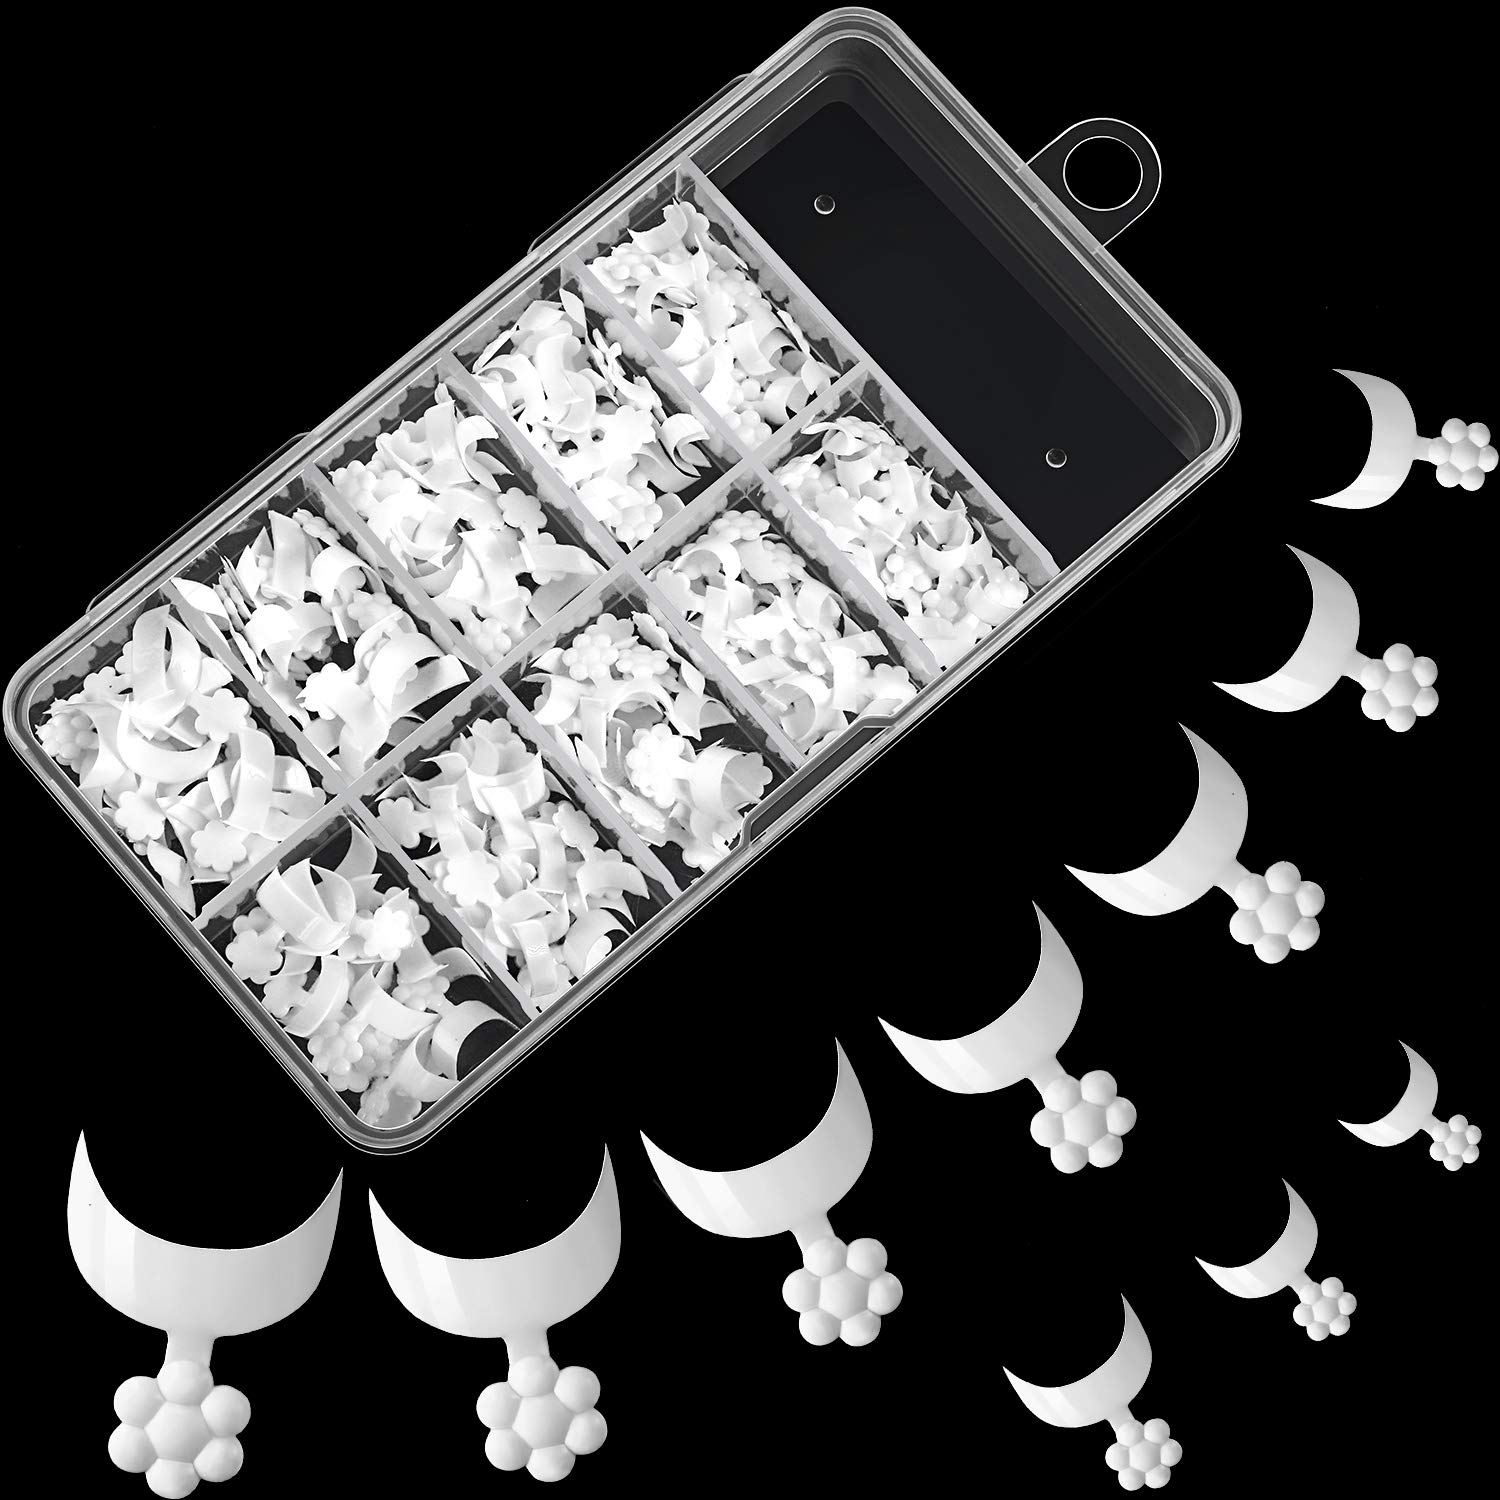 100 Pieces French Short Popular product Style False Sticke Nails Finger 40% OFF Cheap Sale 10 Sizes